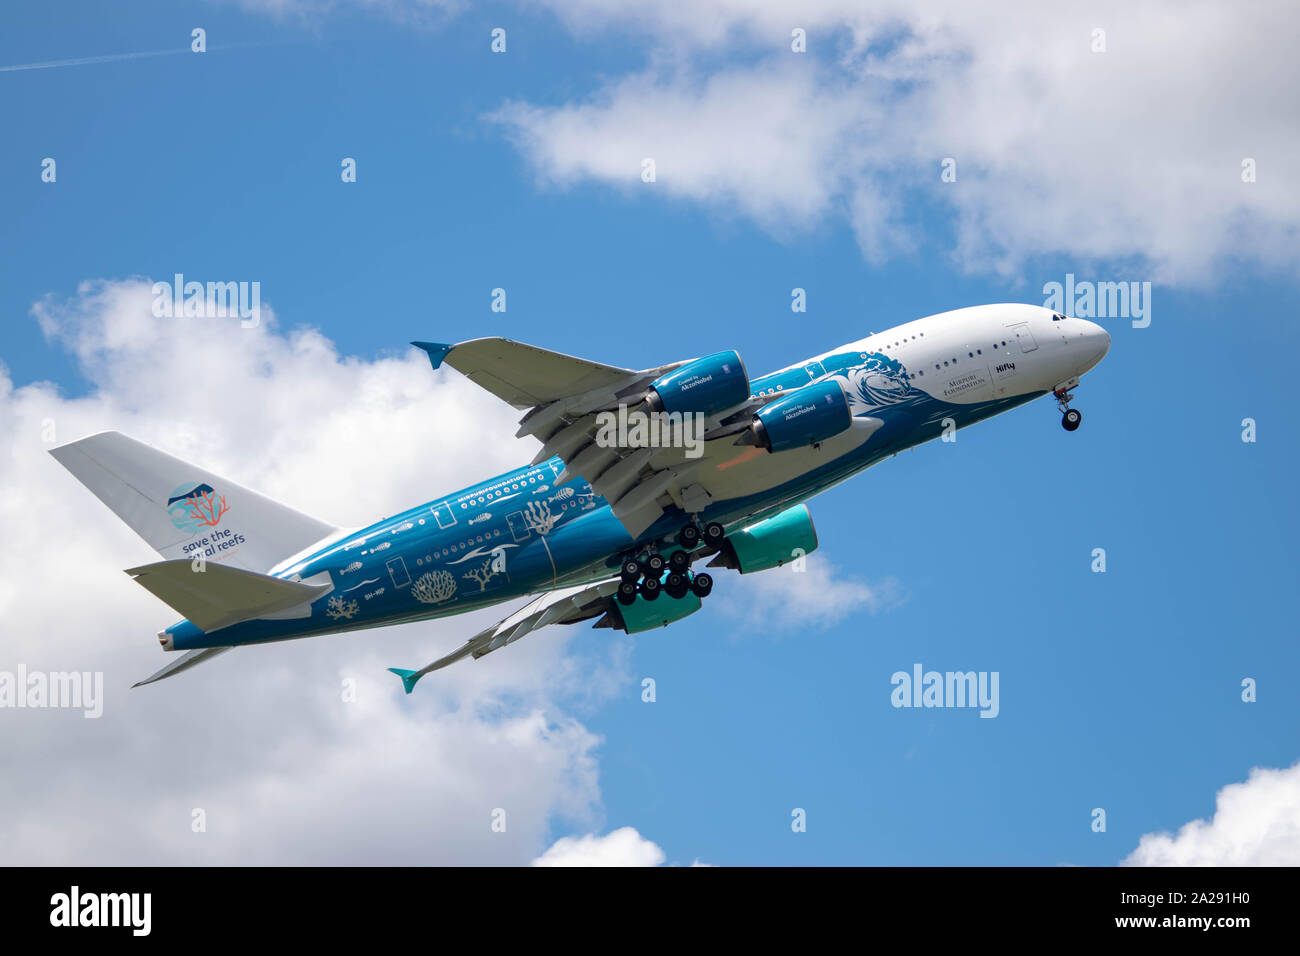 Airbus A380  en présentation au salon du bourget, Not to late to save the corail reef. Stock Photo